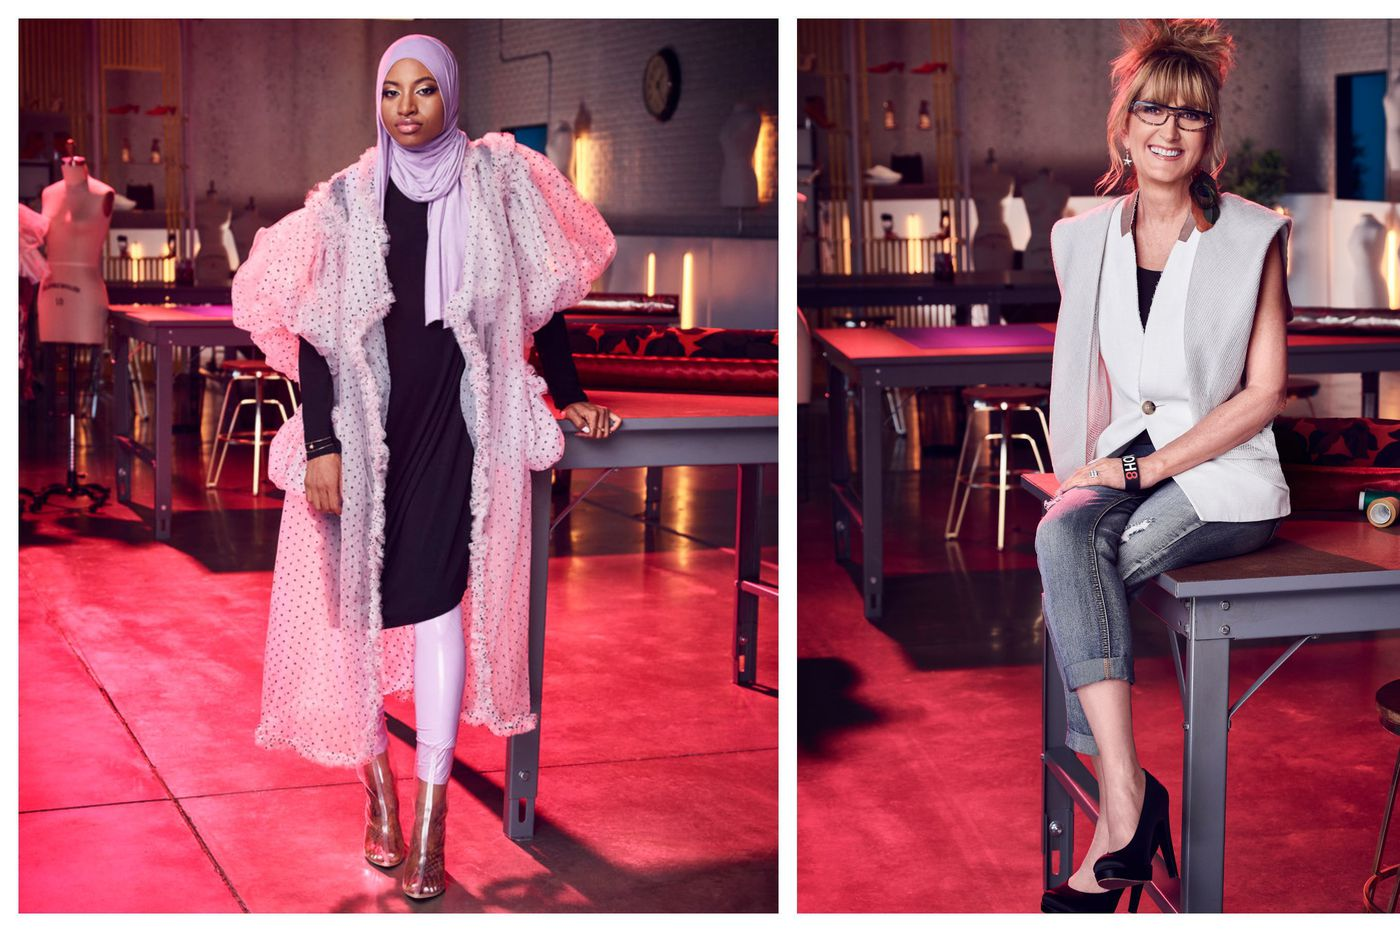 Philly is home to 7 'Project Runway' designers. Meet the latest season's. | Elizabeth Wellington